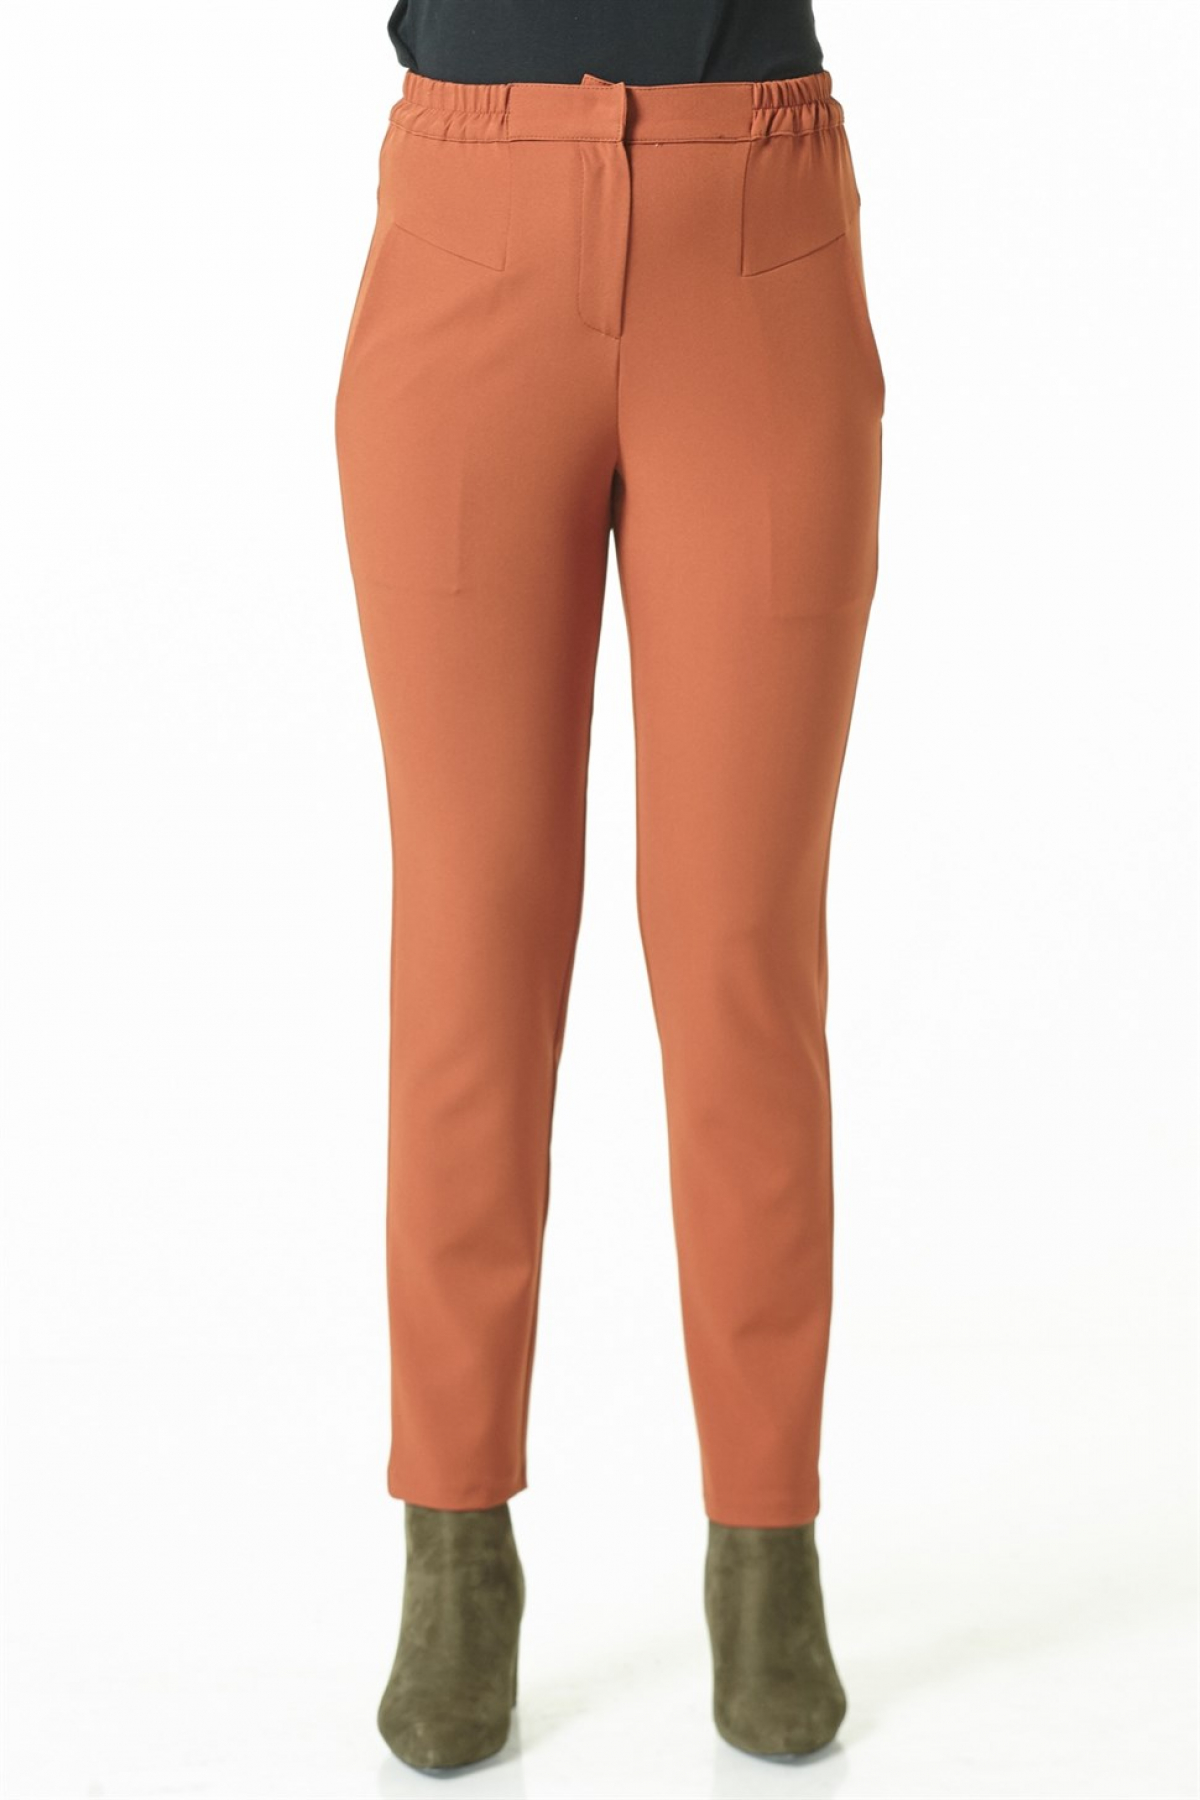 Armine Women Pants - 8k2638  Brown